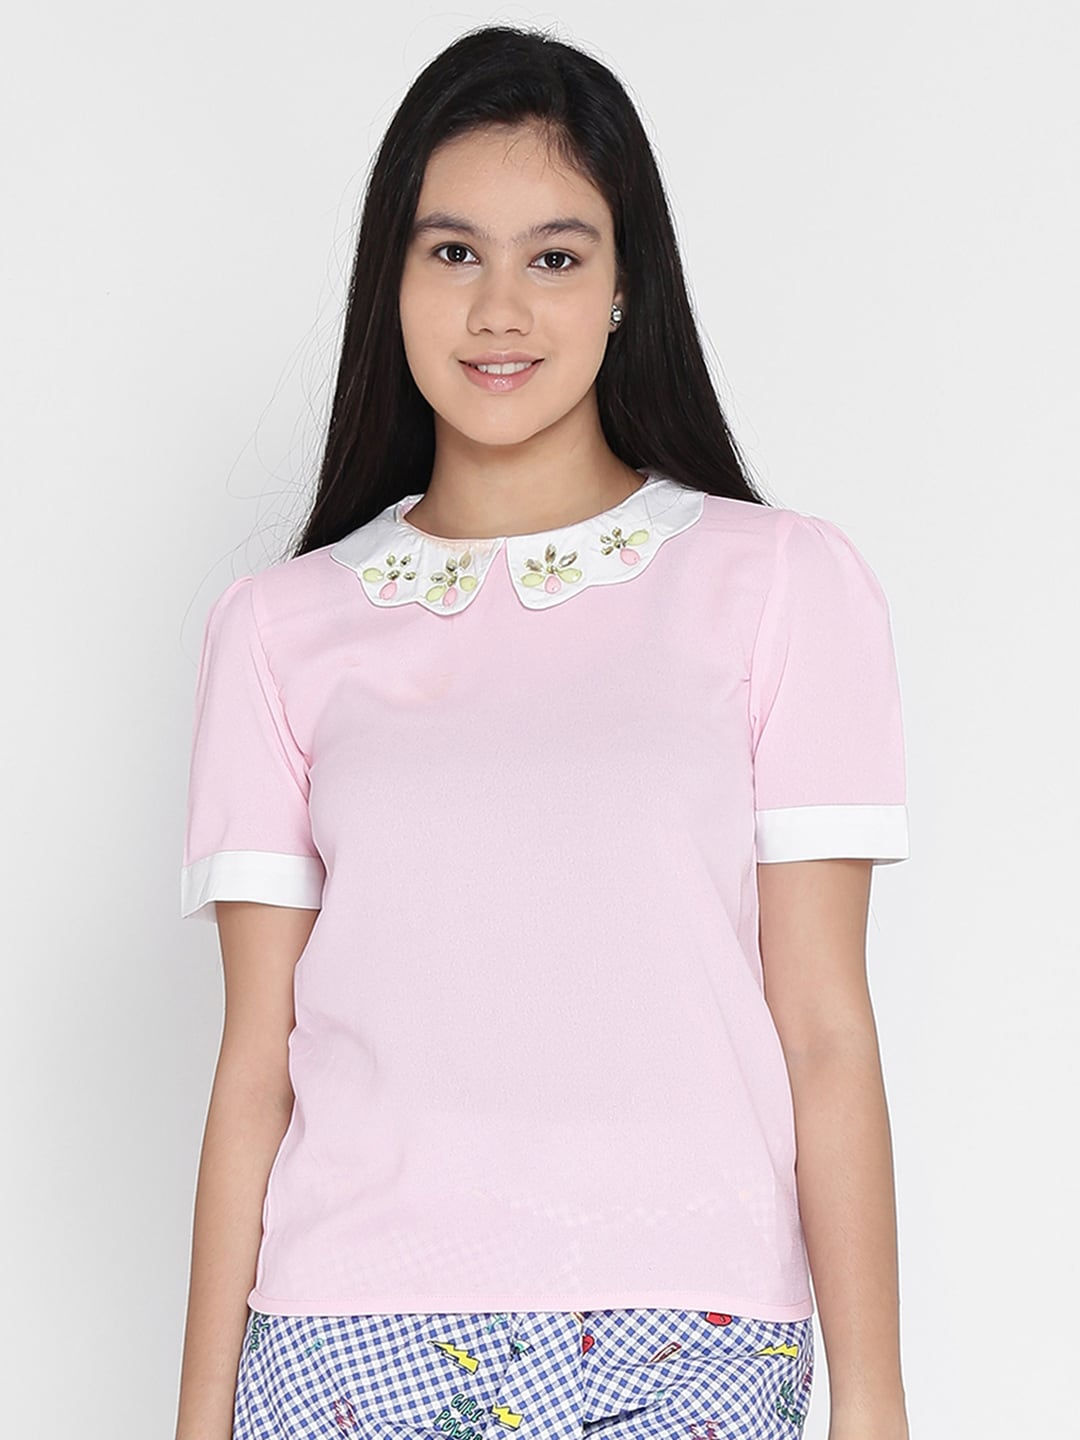 e8450486577 Peter Pan Collar Tops - Buy Peter Pan Collar Tops online in India